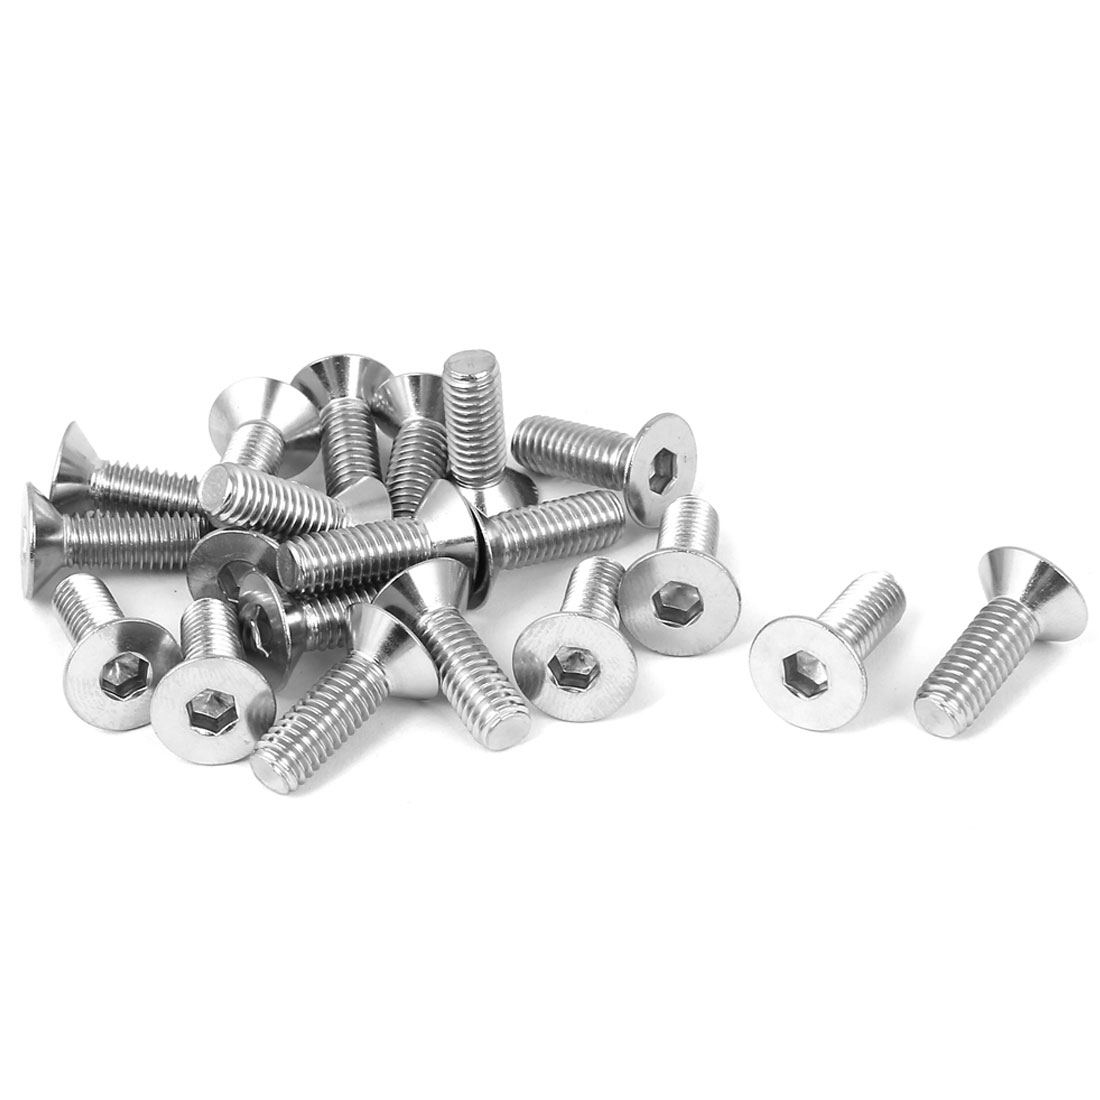 M6x18mm Stainless Steel Hex Socket Flat Head Countersunk Bolts Screw 20pcs